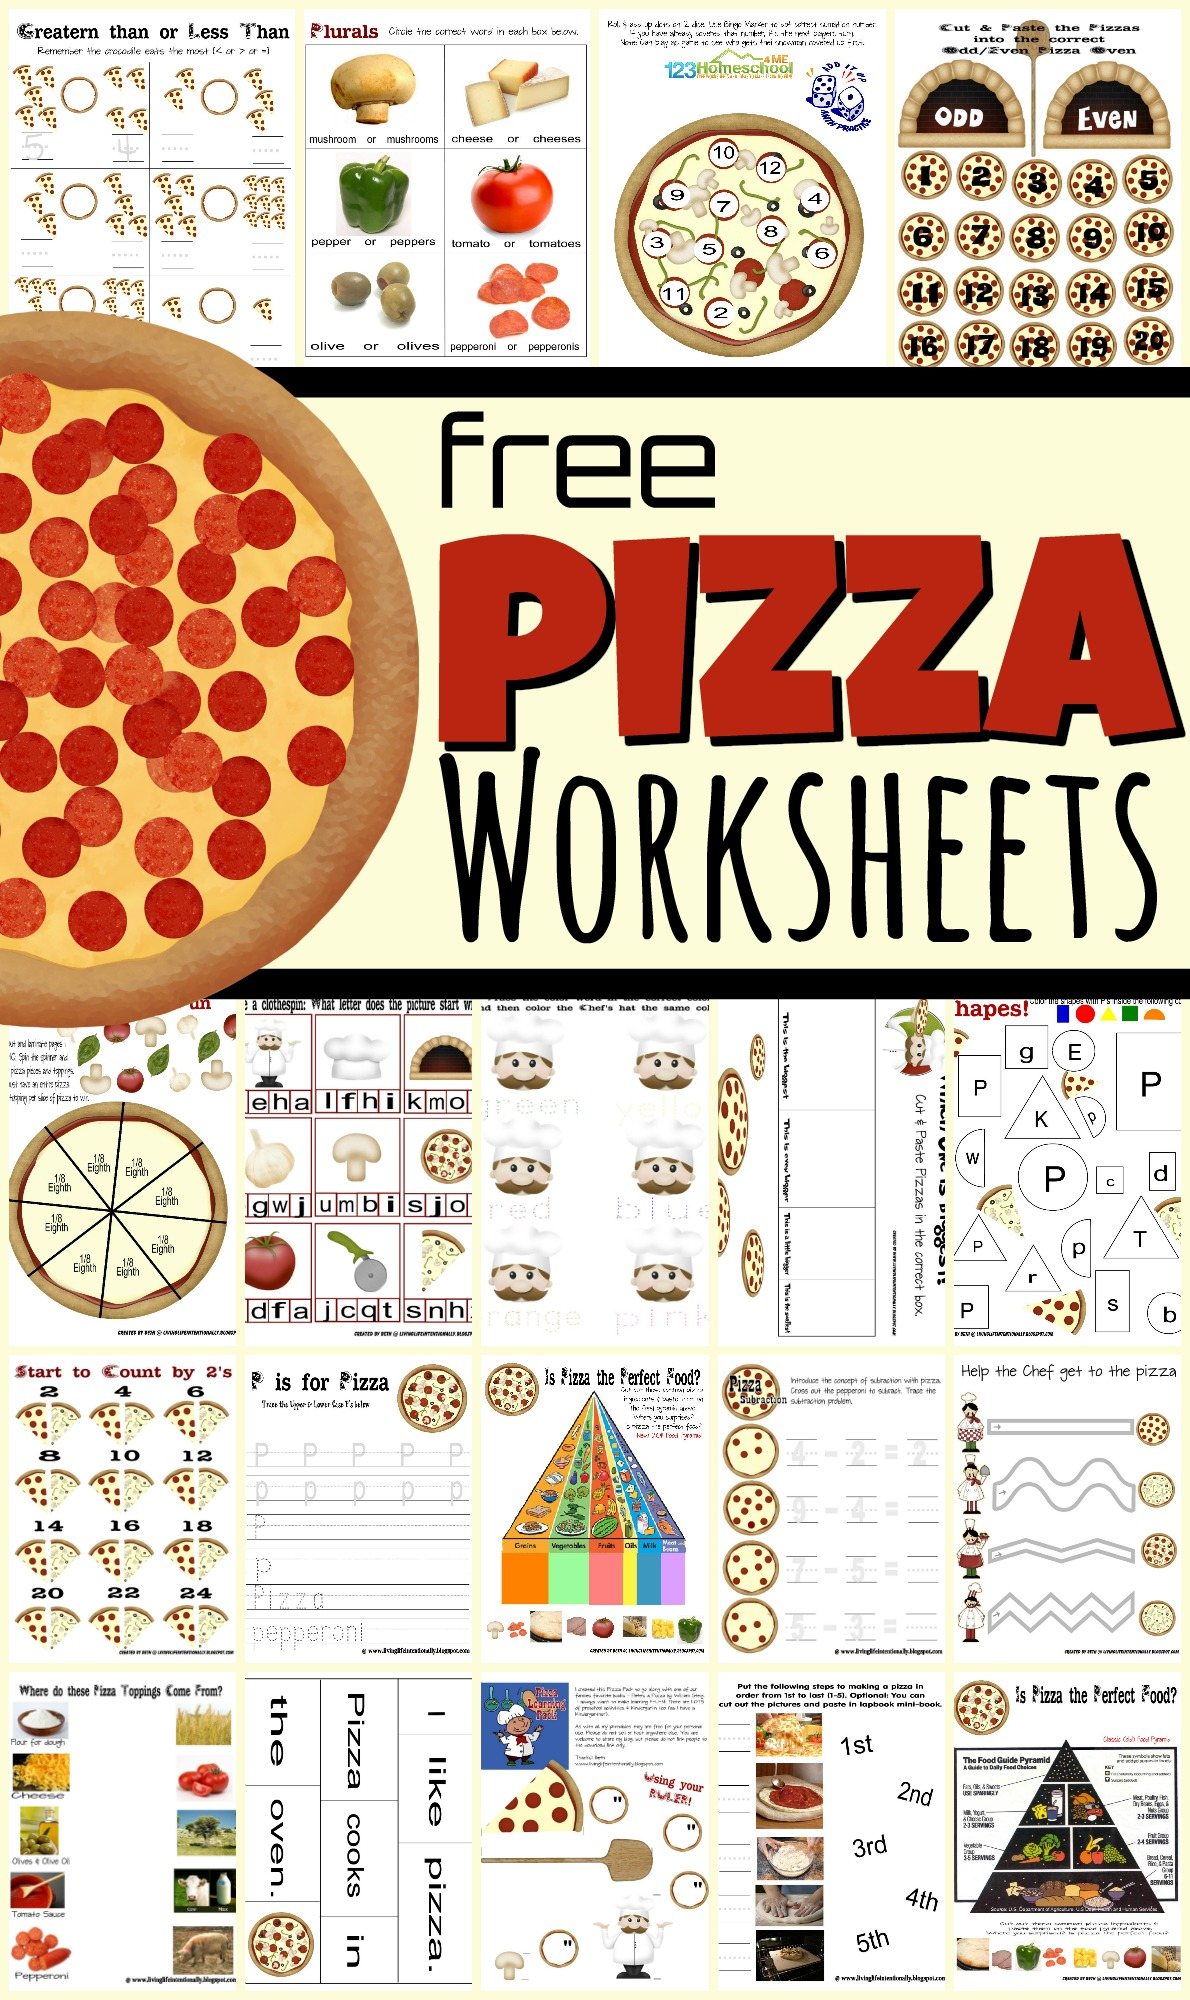 Make learning fun with thesepizza worksheets to help children from toddler, preschool, pre-k, kindergarten, and first grade students. Thesefree printable pizza worksheets are filled with super cute pizza themed printables to practice tracing letters, counting, addition, measuring, colors, sequencing, ordinal words, odd / even, pizza clock, beginning sounds, healthy eating, skip counting, and so much more! Simply download pdf file withpizza worksheets for preschoolers and you are ready for educational activities to learn with a pizza party.